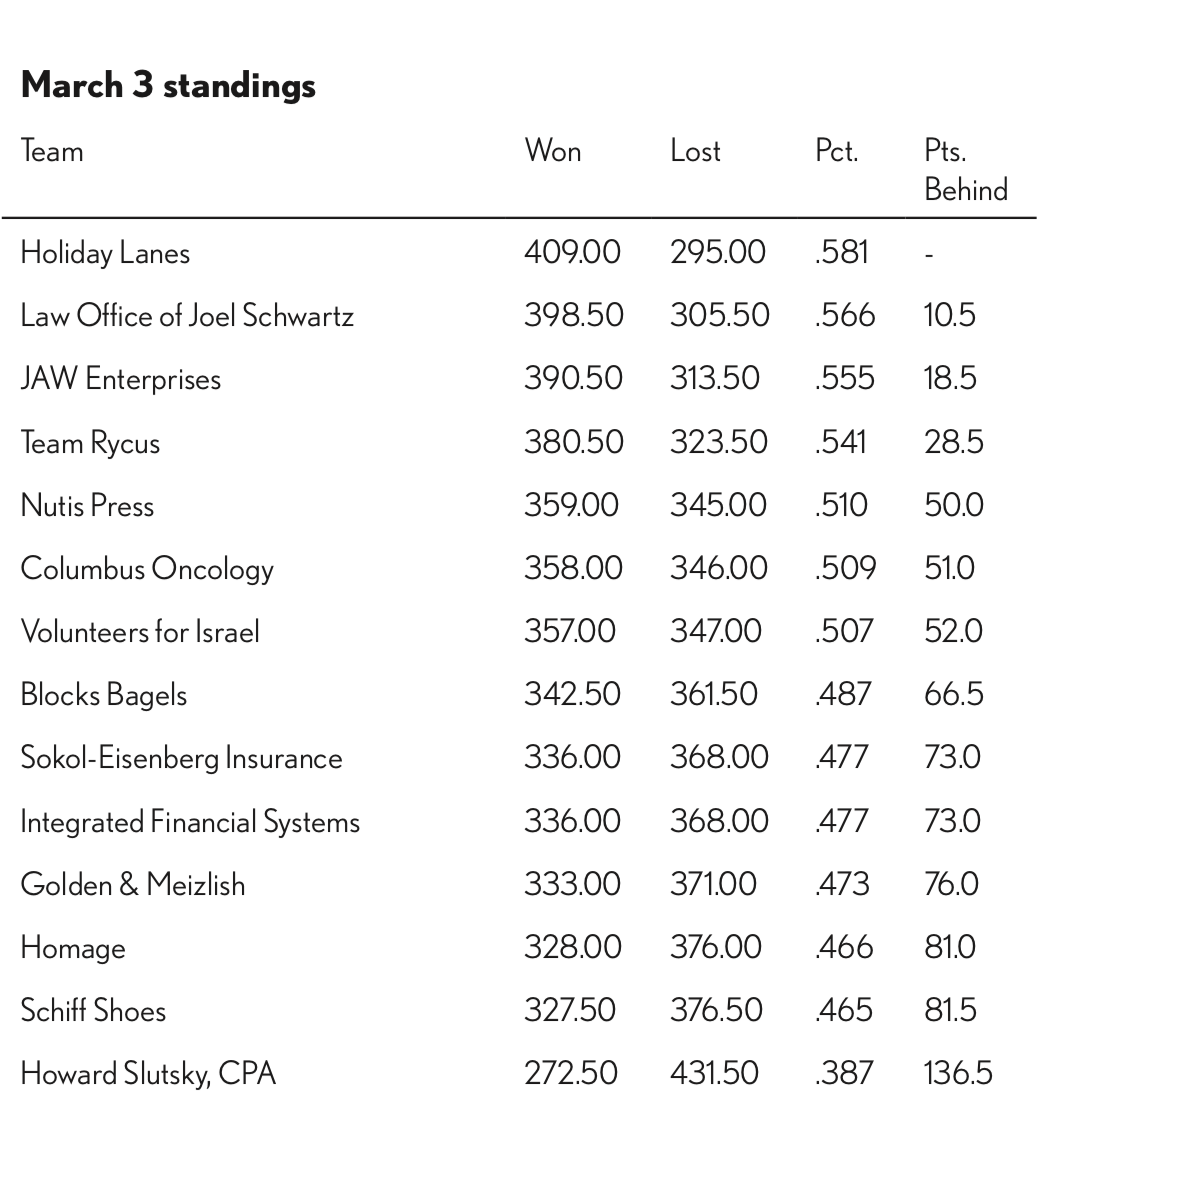 March 3 standings